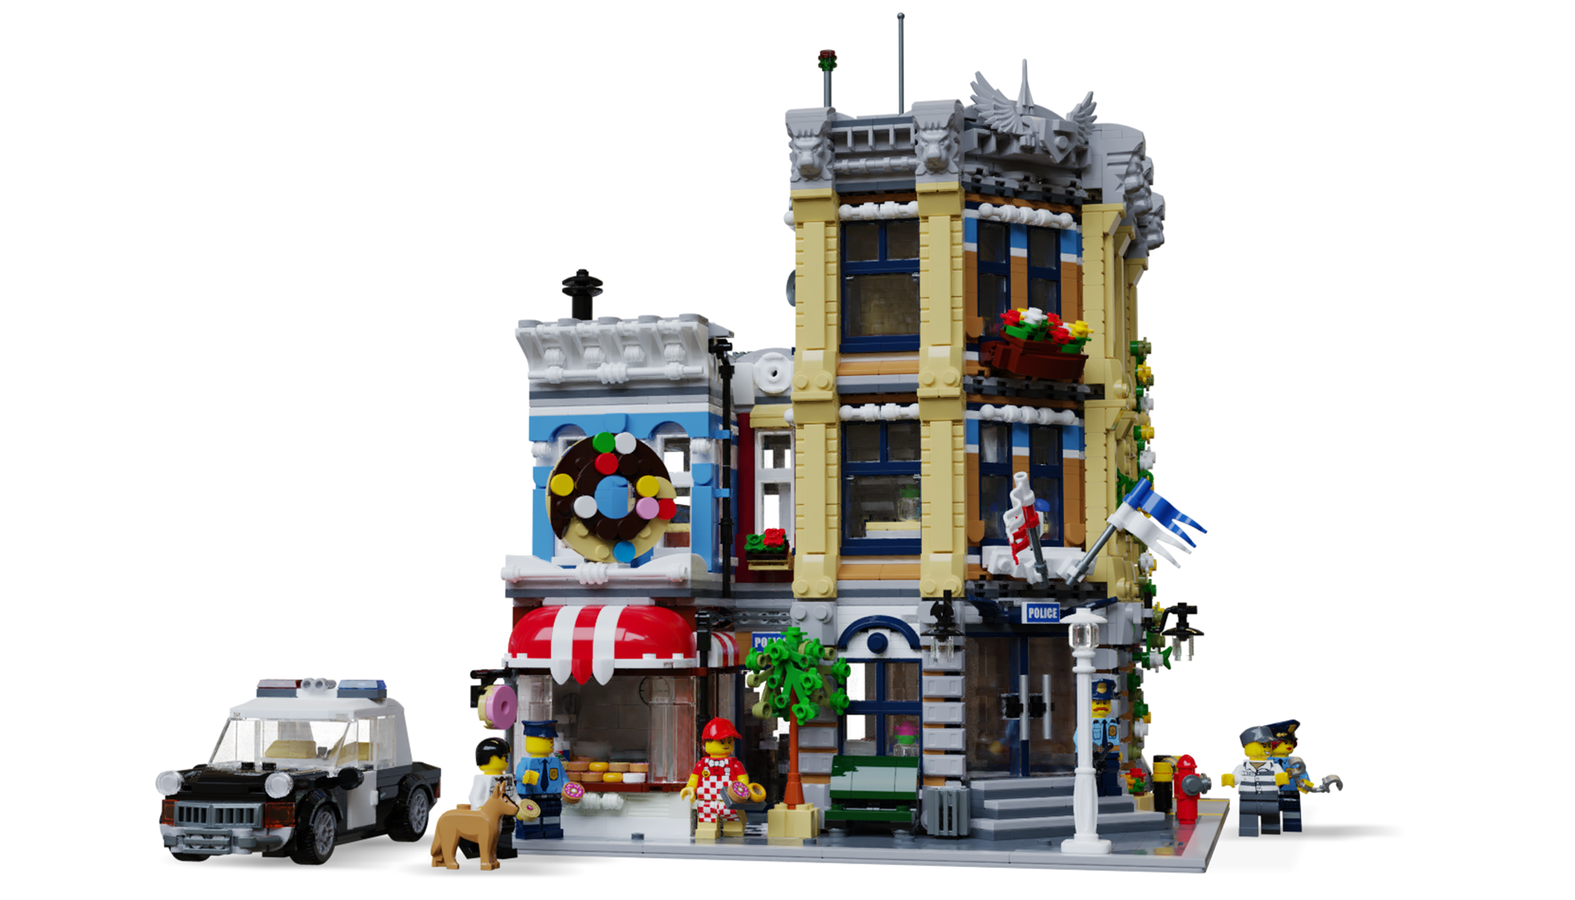 6164250-Police_Station_3-thumbnail-full.png